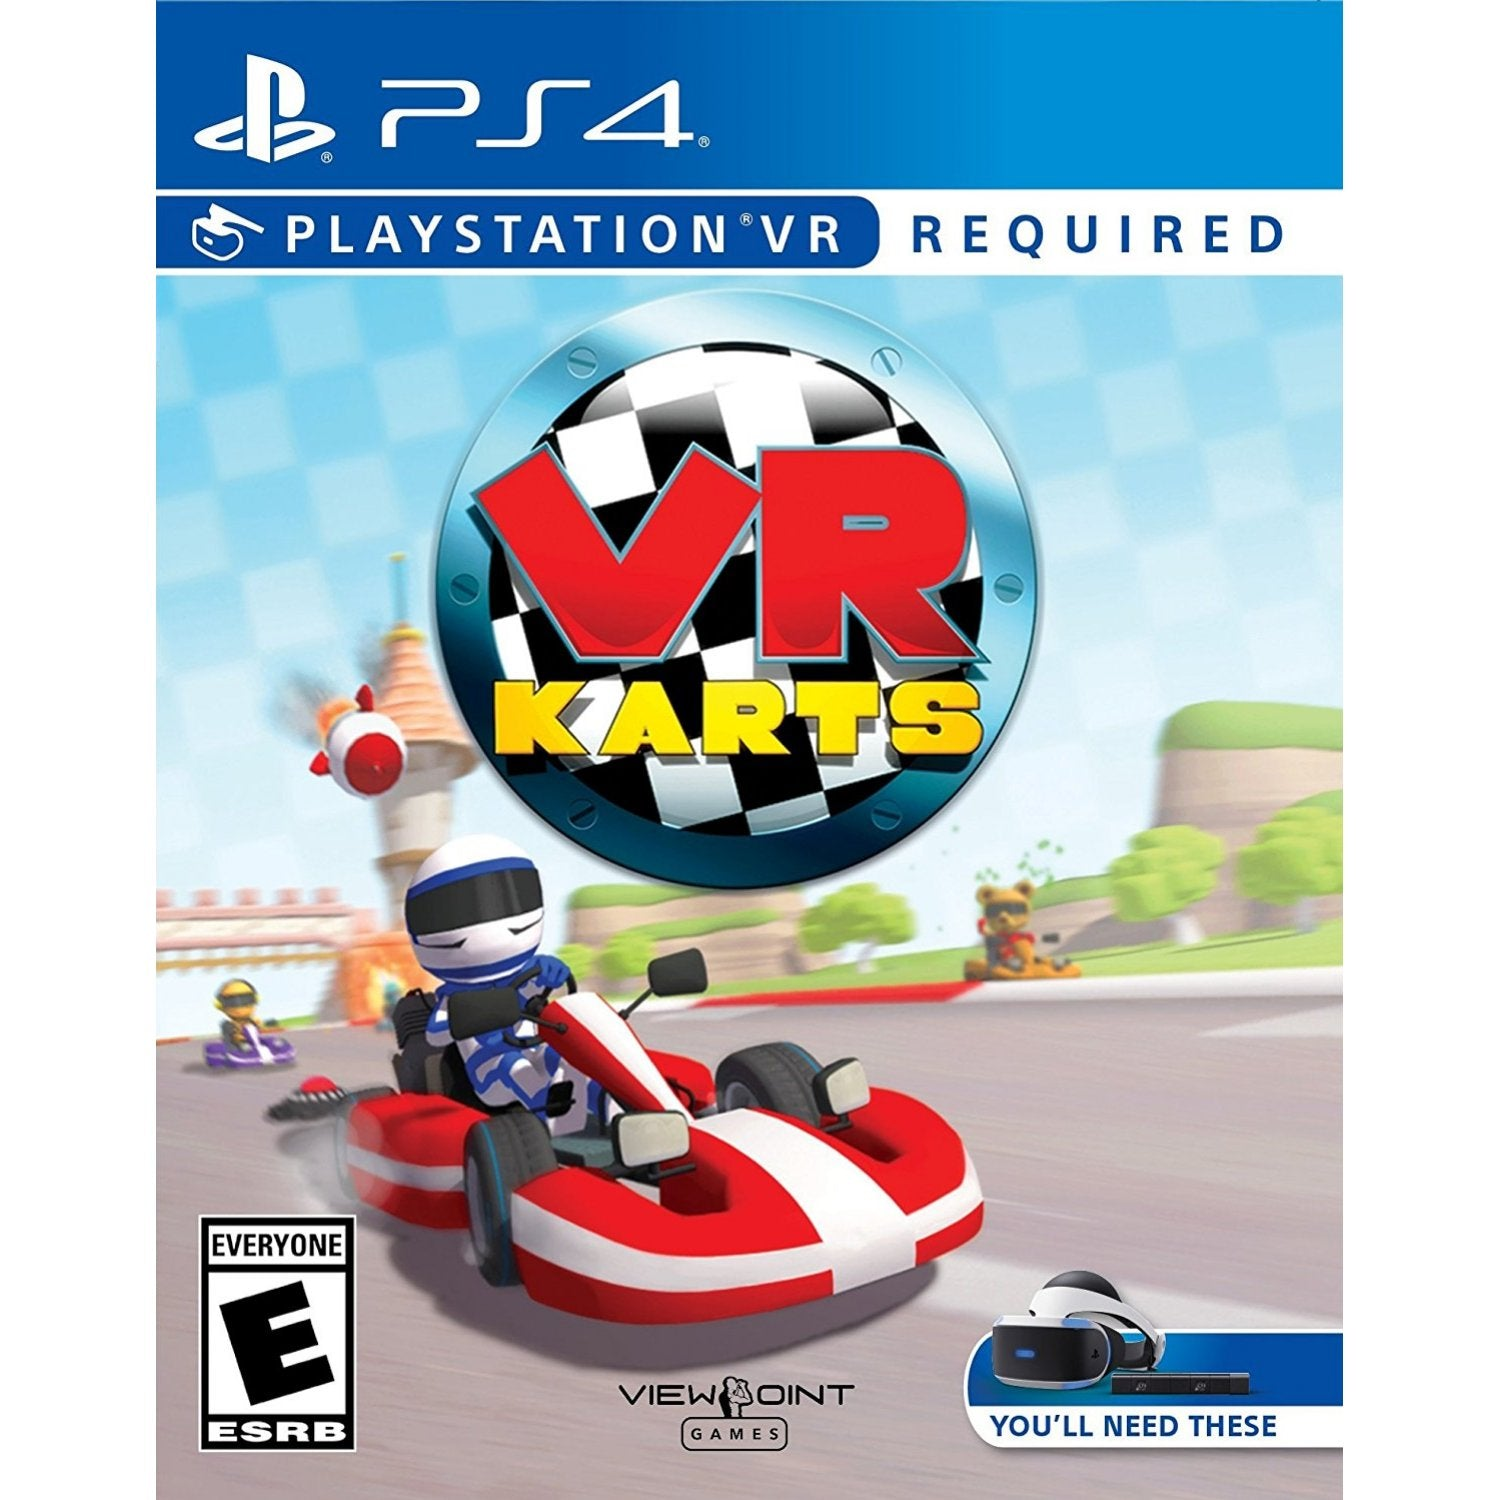 Vr Ps4 Bravo Team Aim Controller Region 3 English Karts